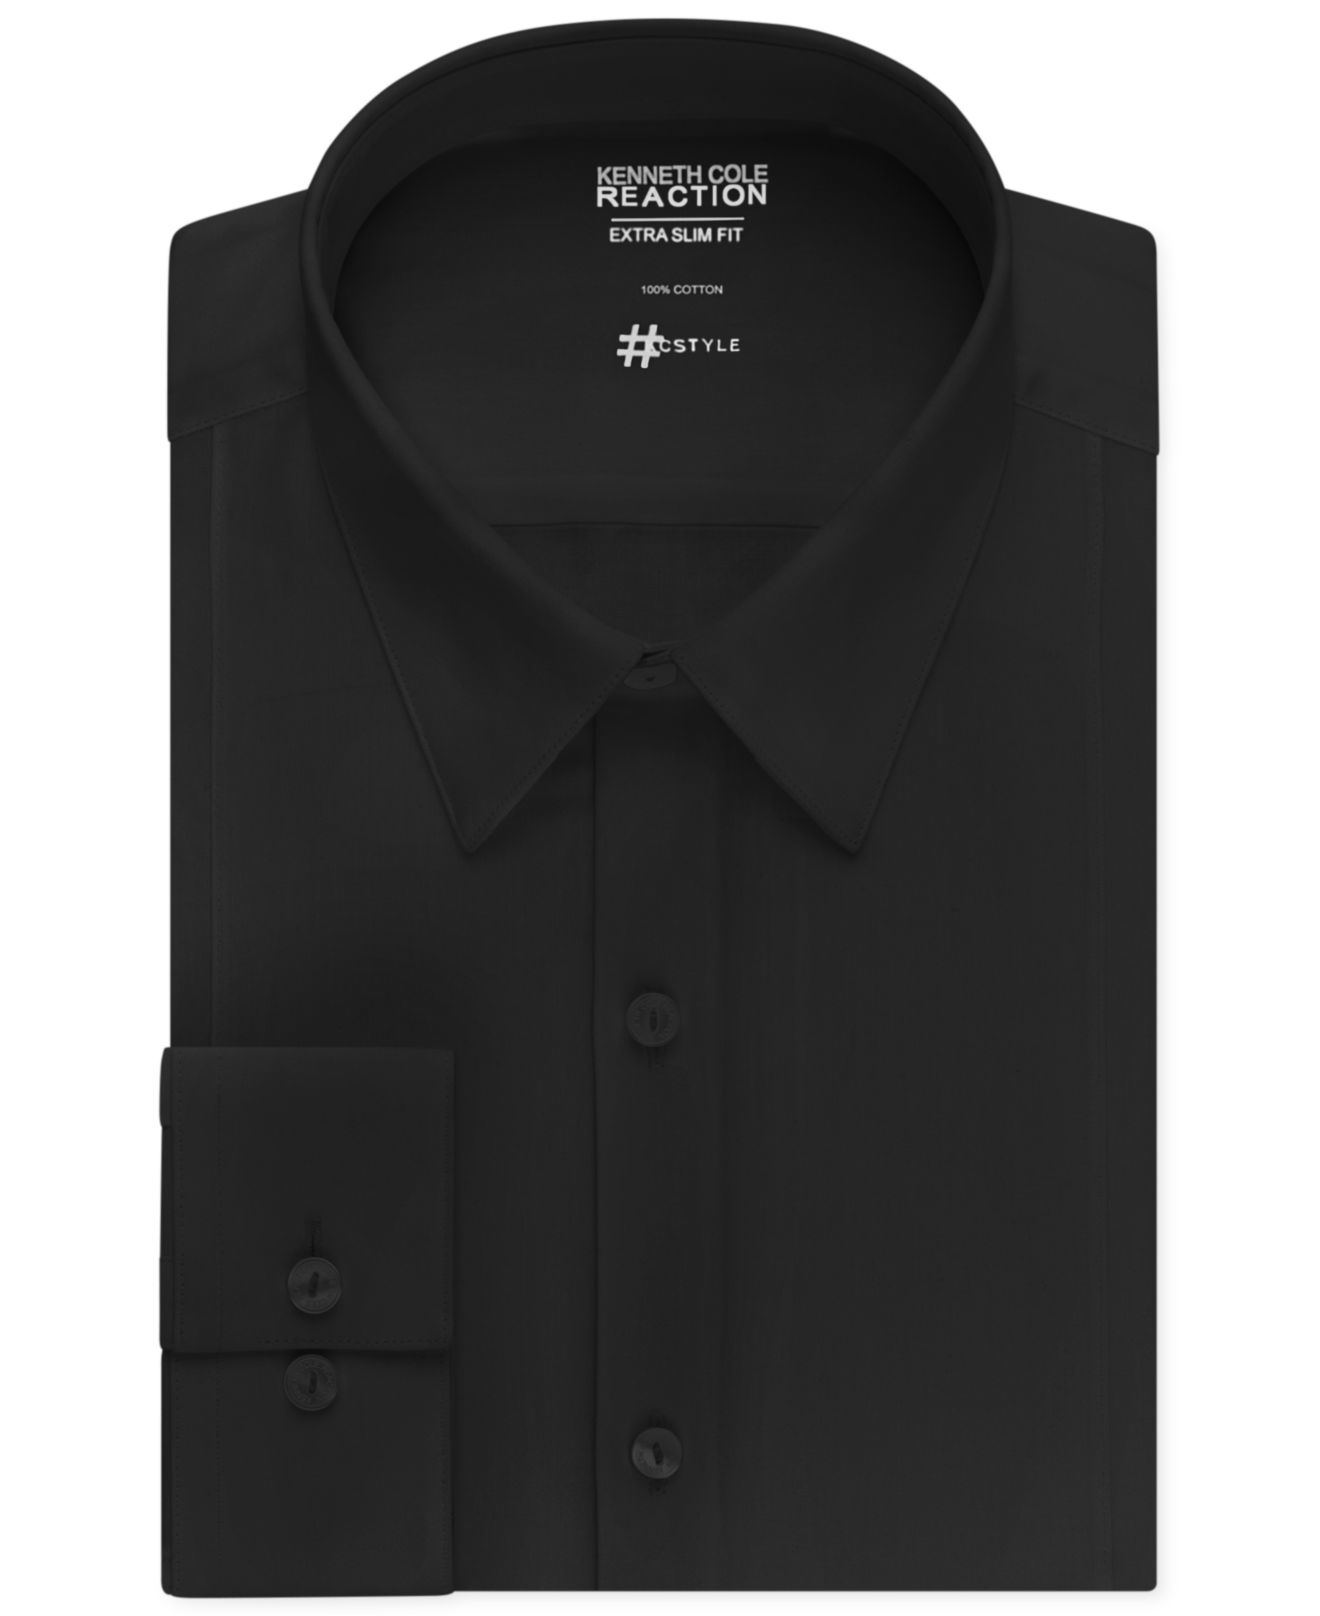 Kenneth cole reaction extra slim fit solid dress shirt in for Extra slim dress shirt